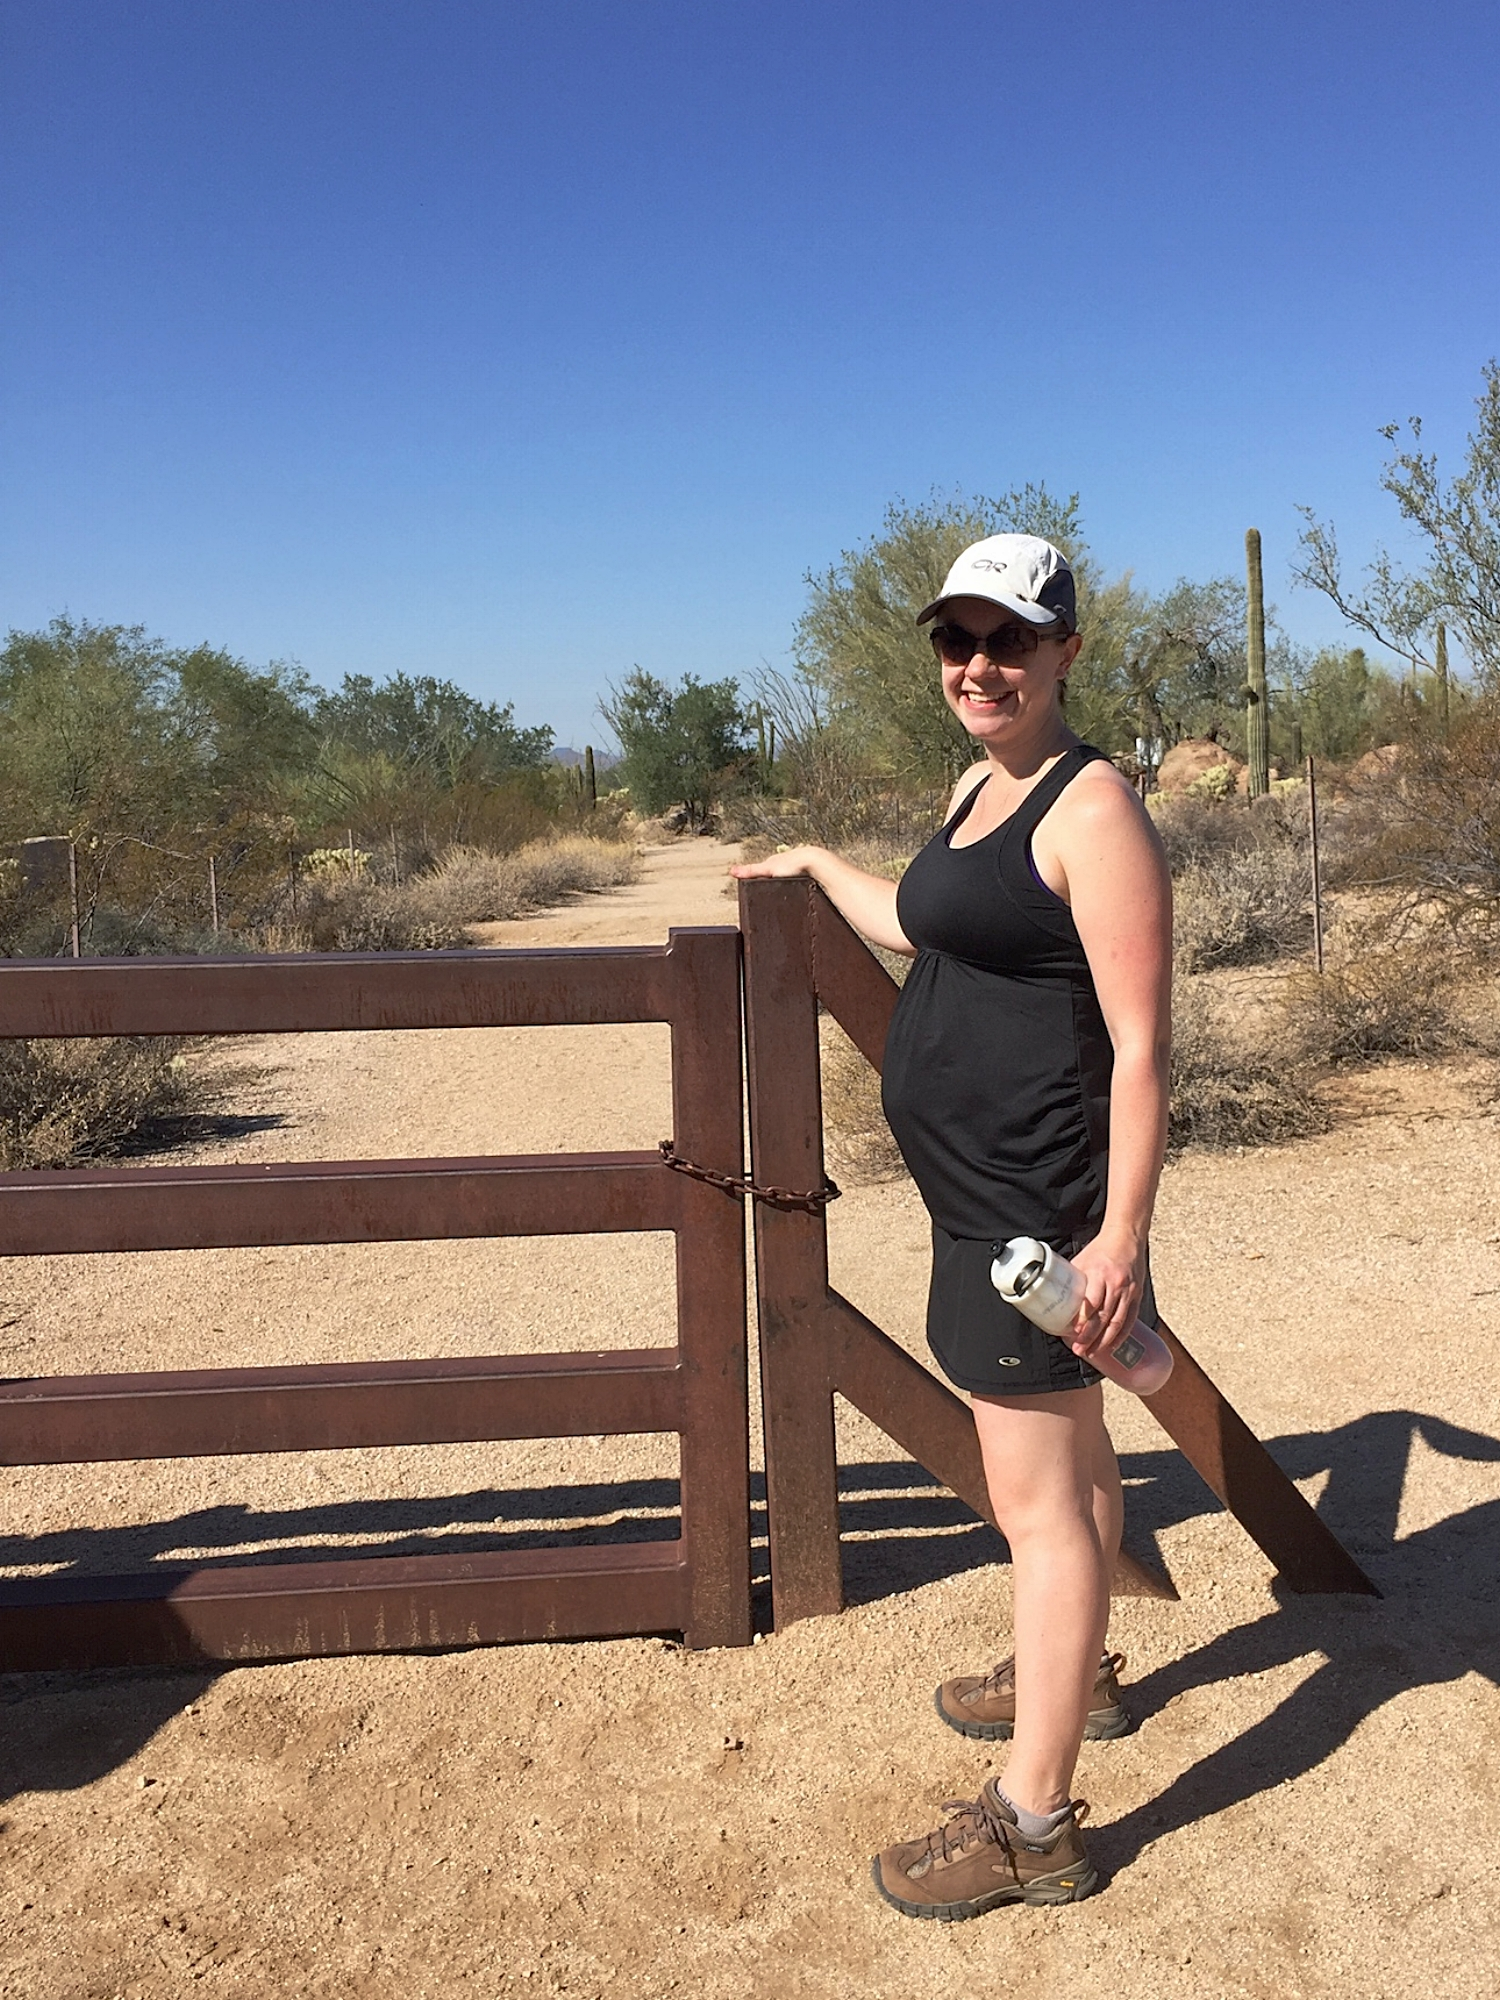 Apparently, hiking is the only photo documentation I have and it didn't even make my review list. This one is in Arizona when I was 18 weeks pregnant.